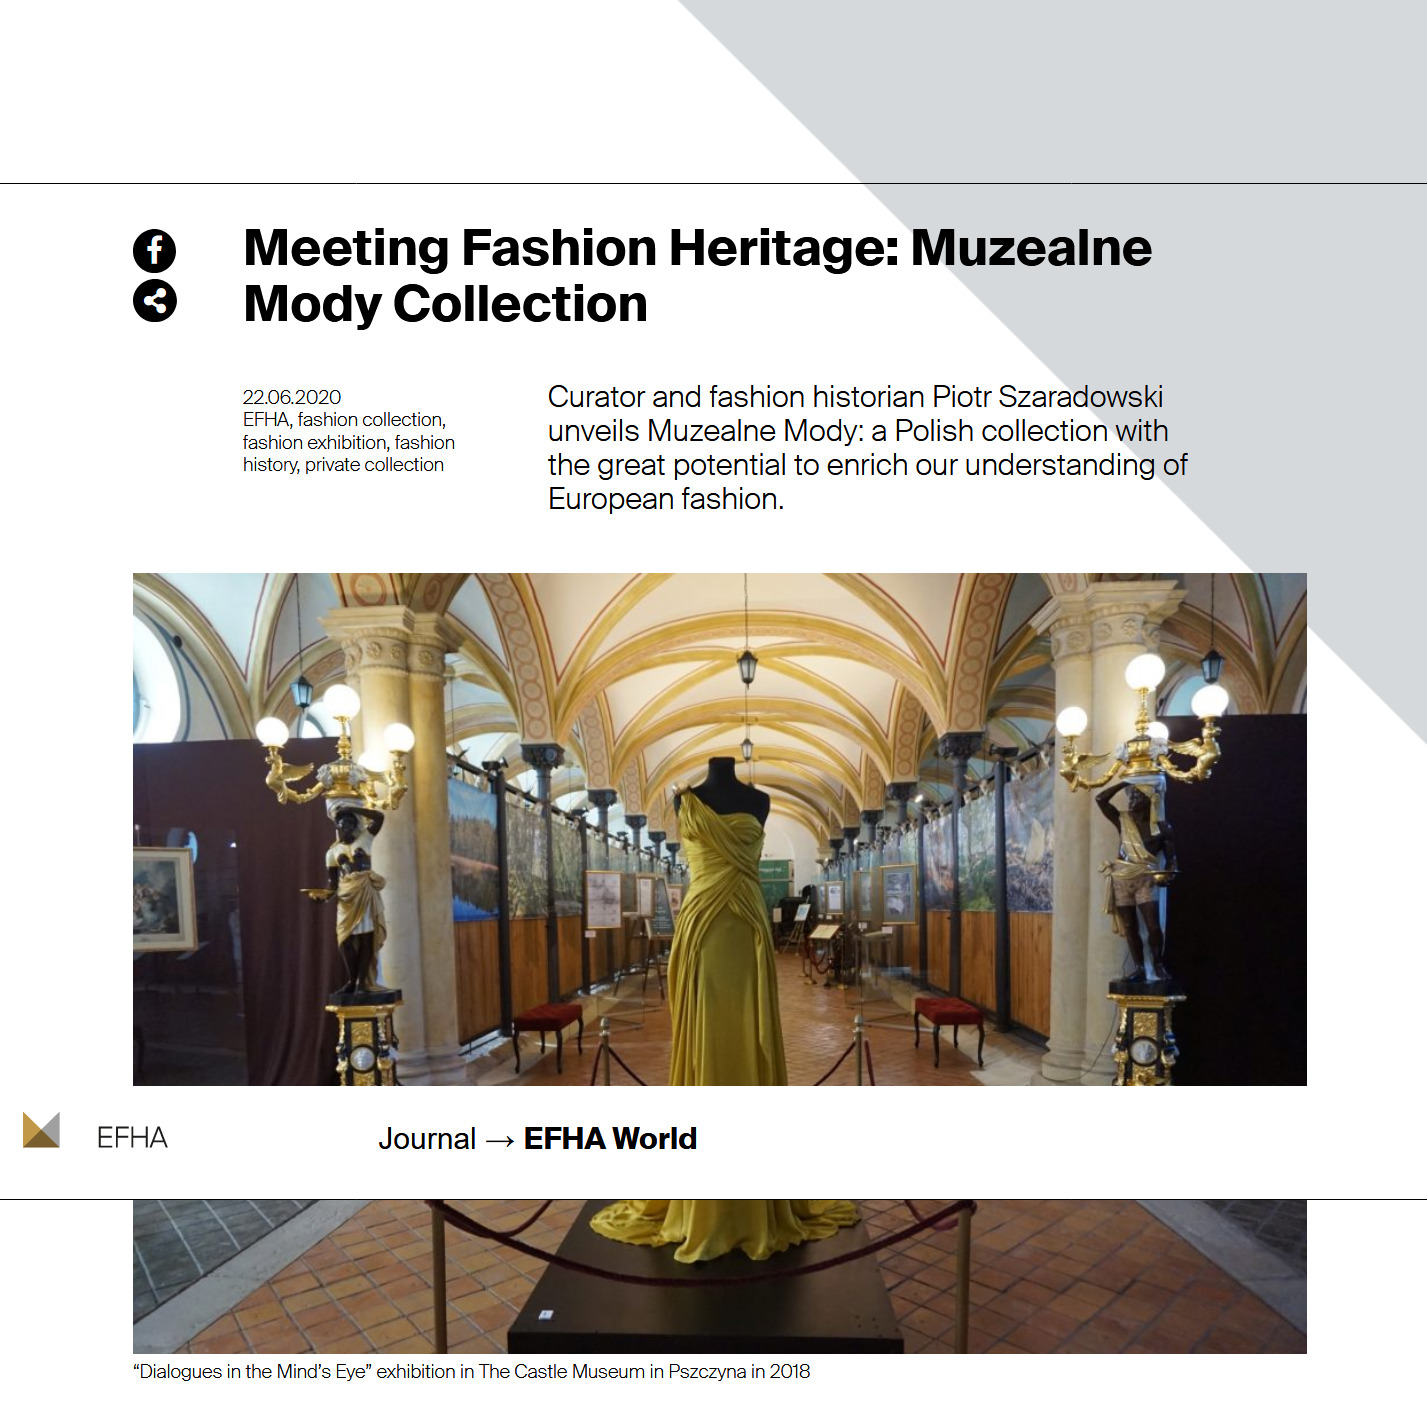 EFHA Meeting Fashion Heritage